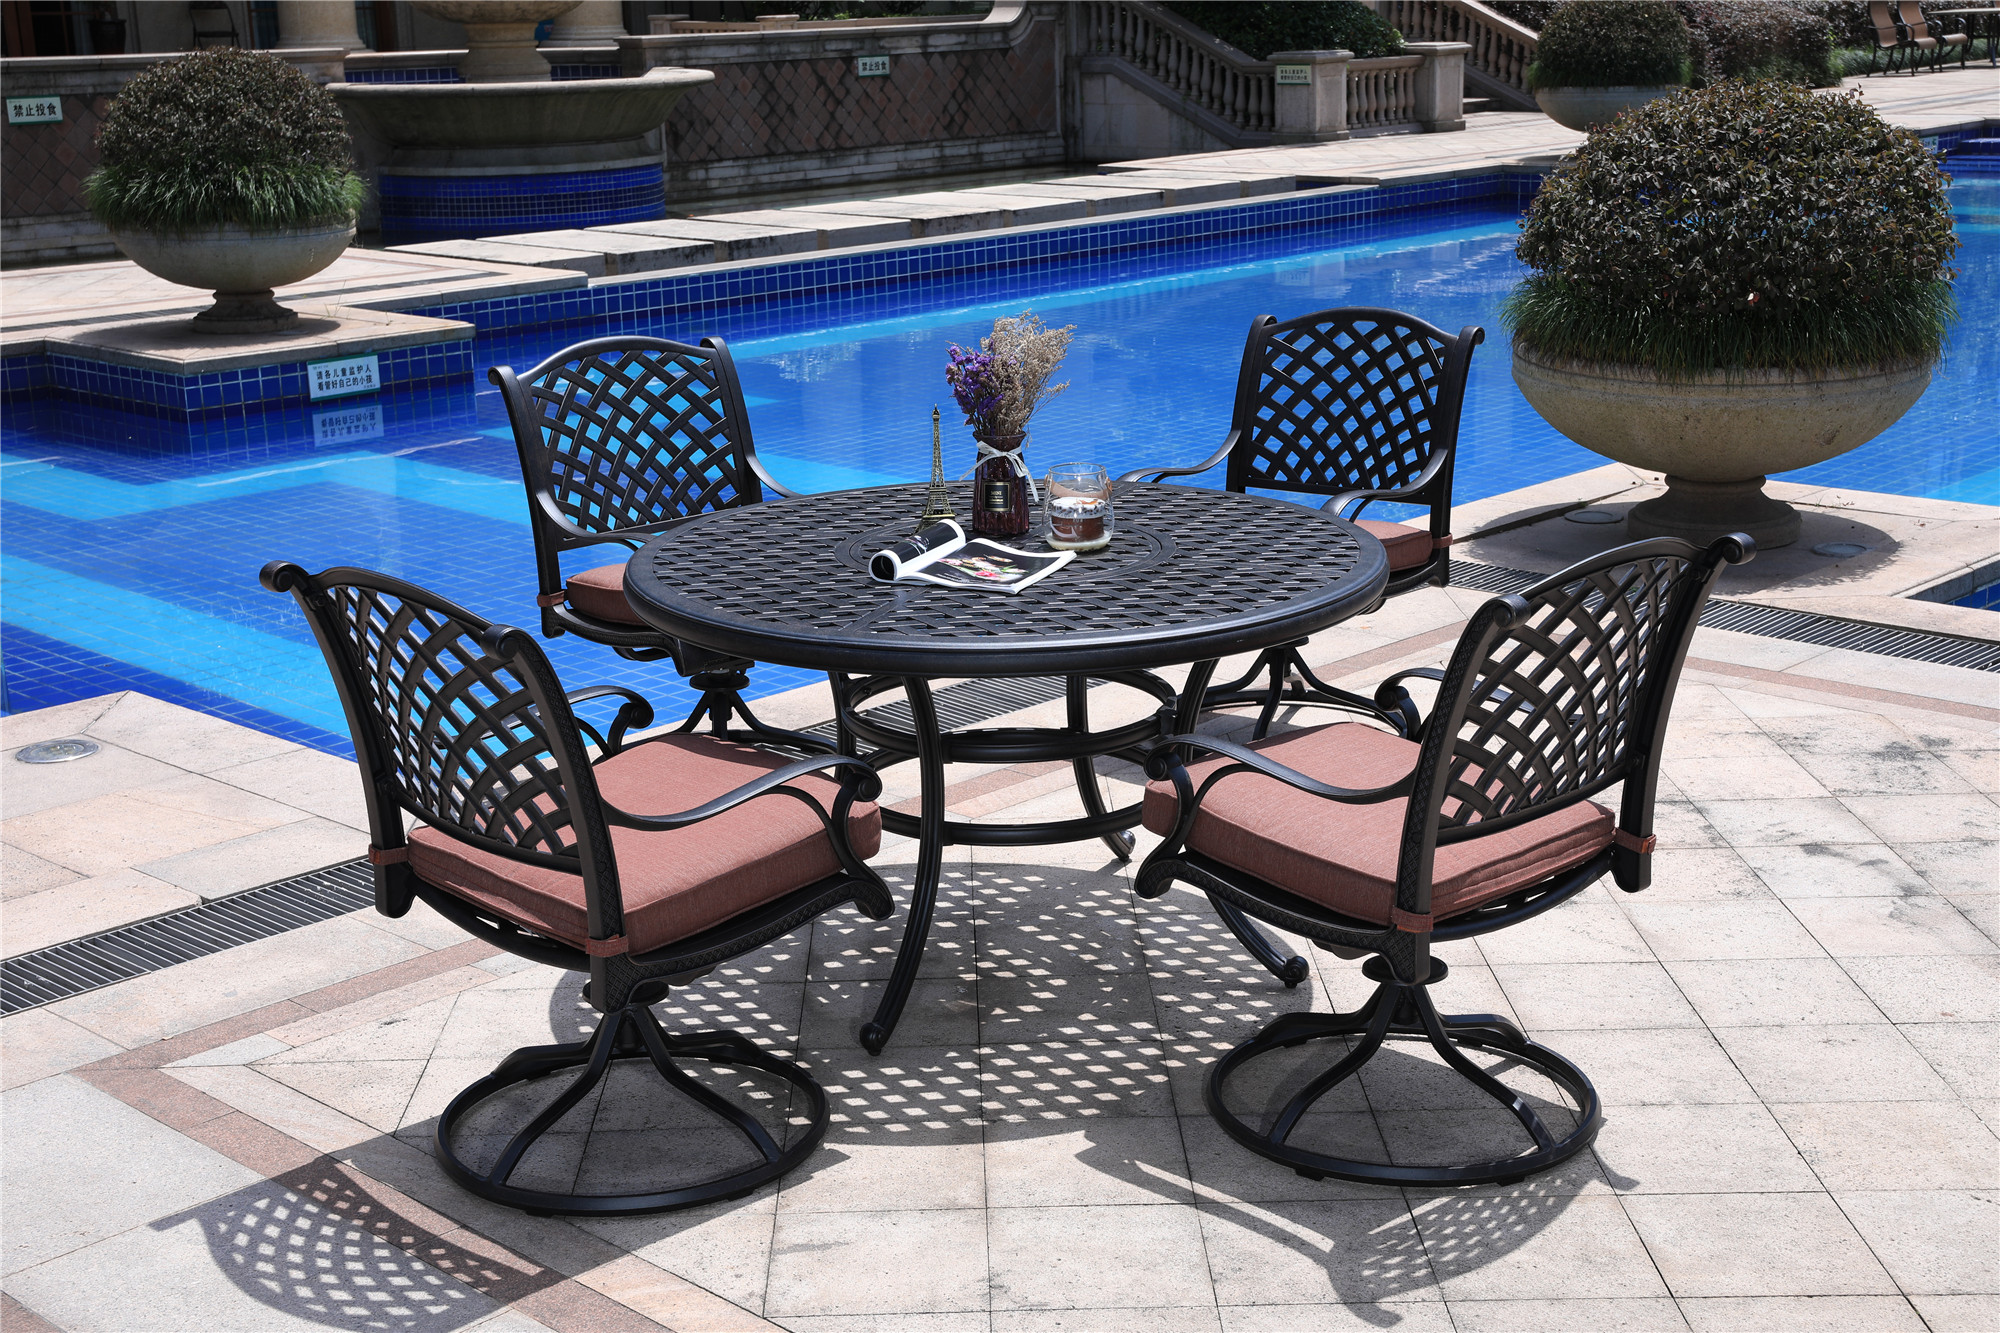 hennessey outdoor patio dining set with swivel rockers cast aluminum 5 piece in brown cushions multiple colors